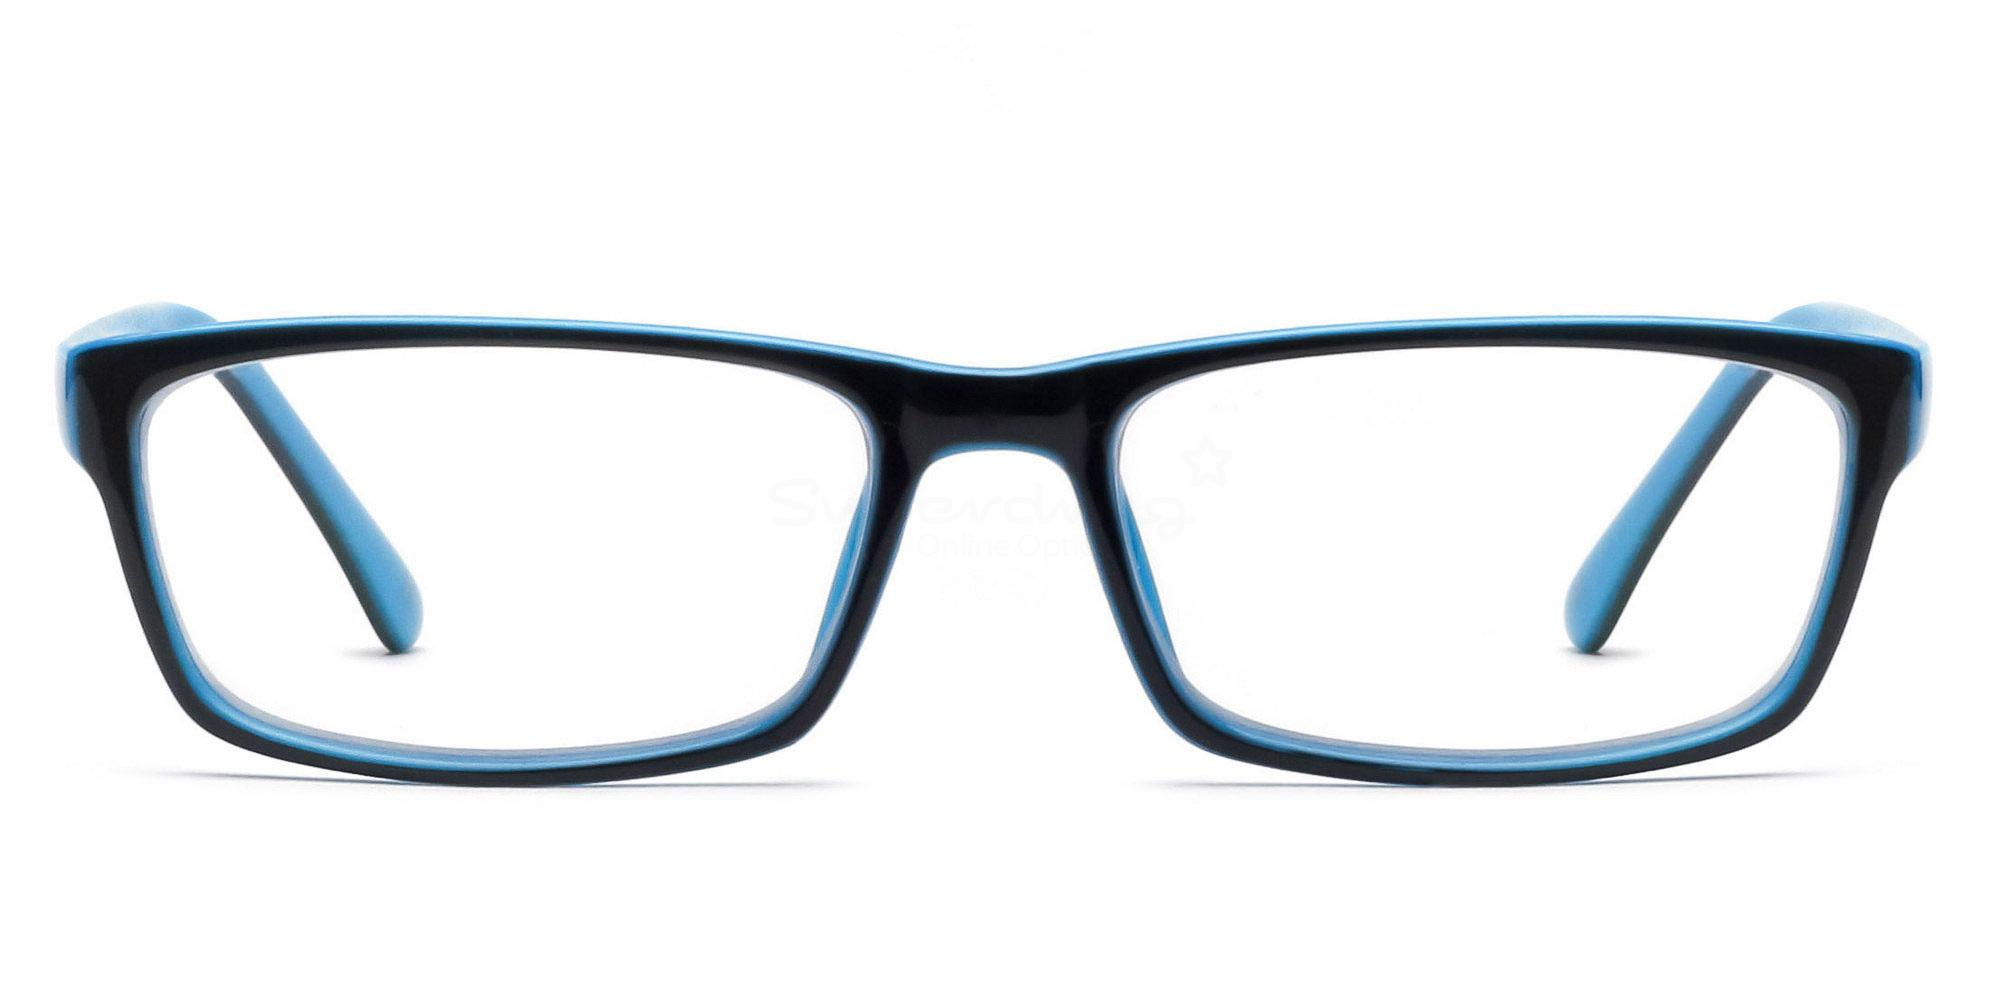 COL.25 2426 - Black and Blue Glasses, Helium